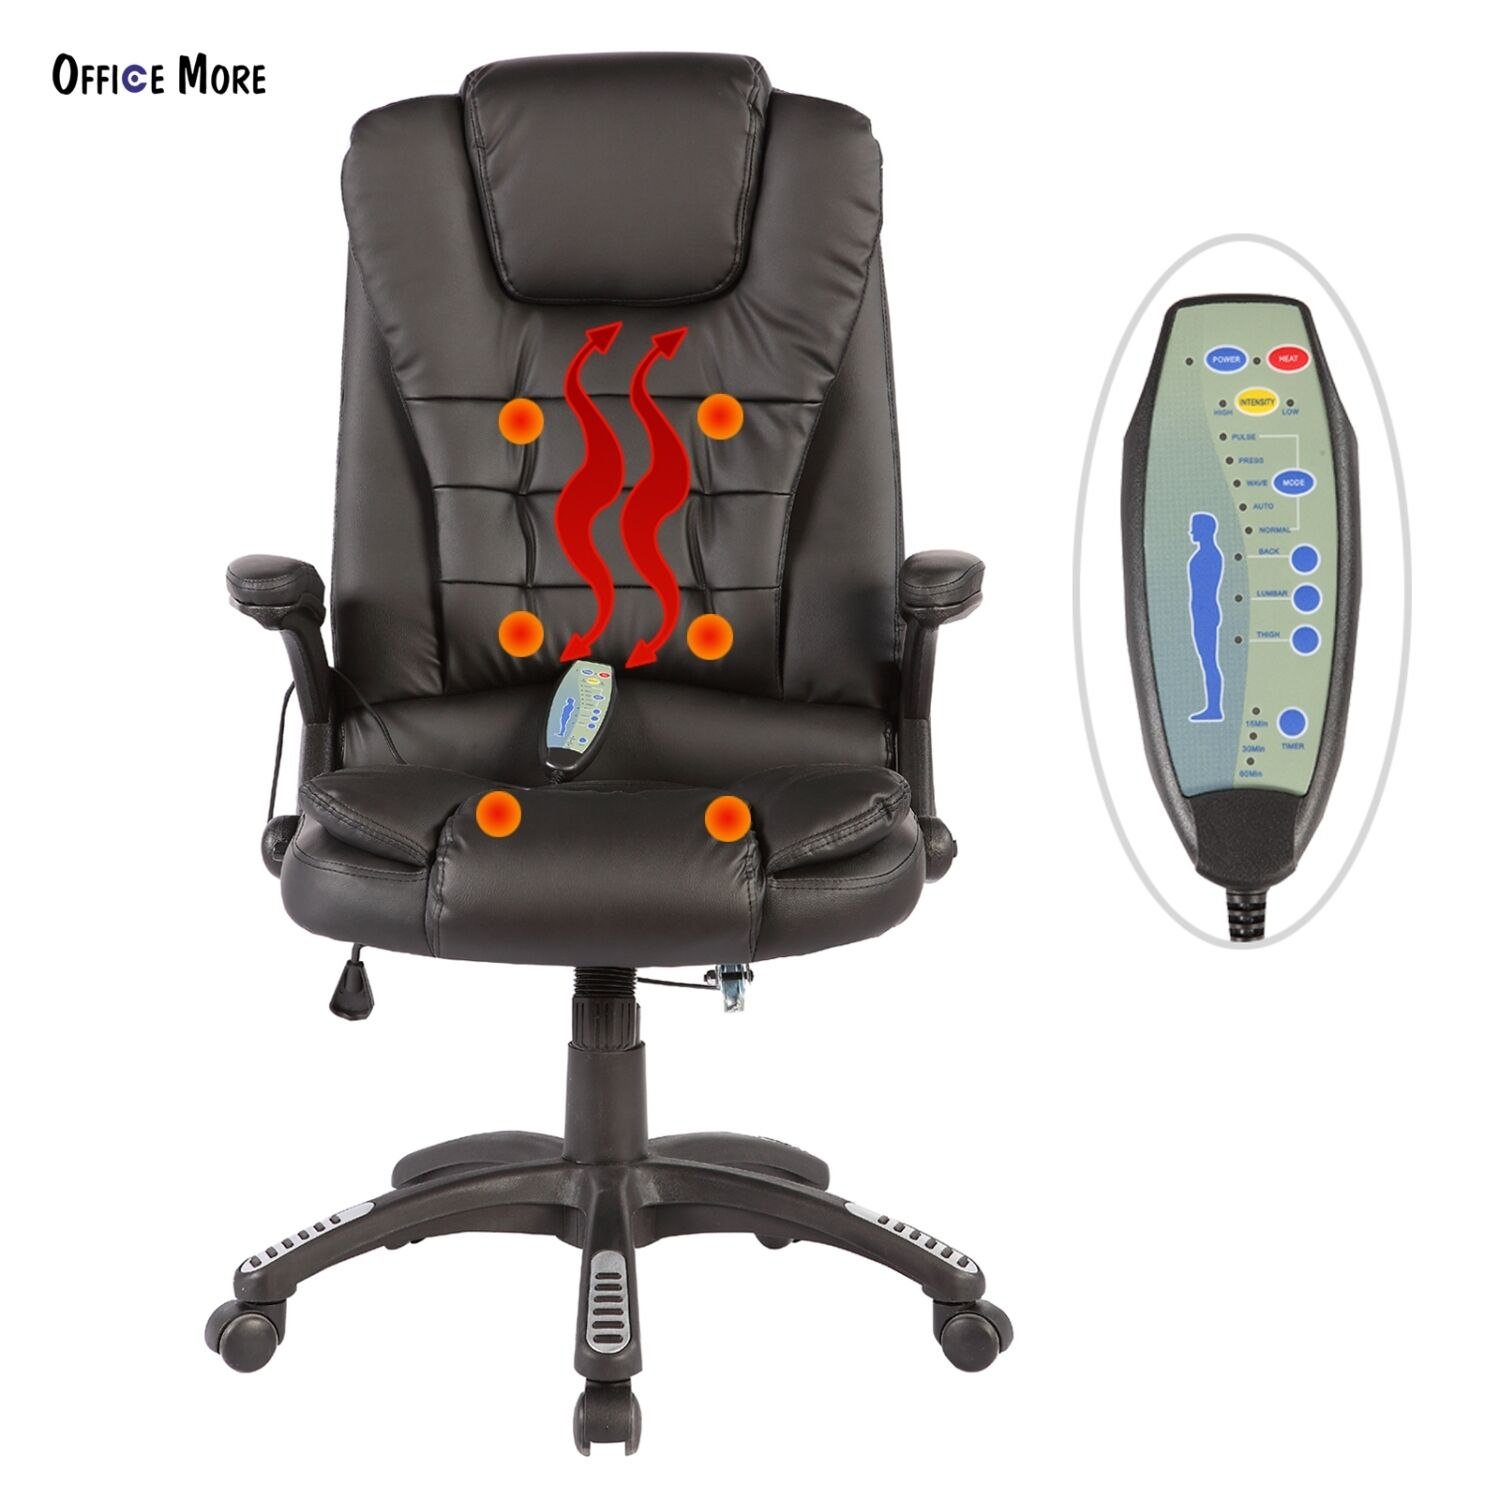 Office Chair Massager Details About Office Massage Chair Desk Swivel Heated Vibrating Ergonomic Executive Black